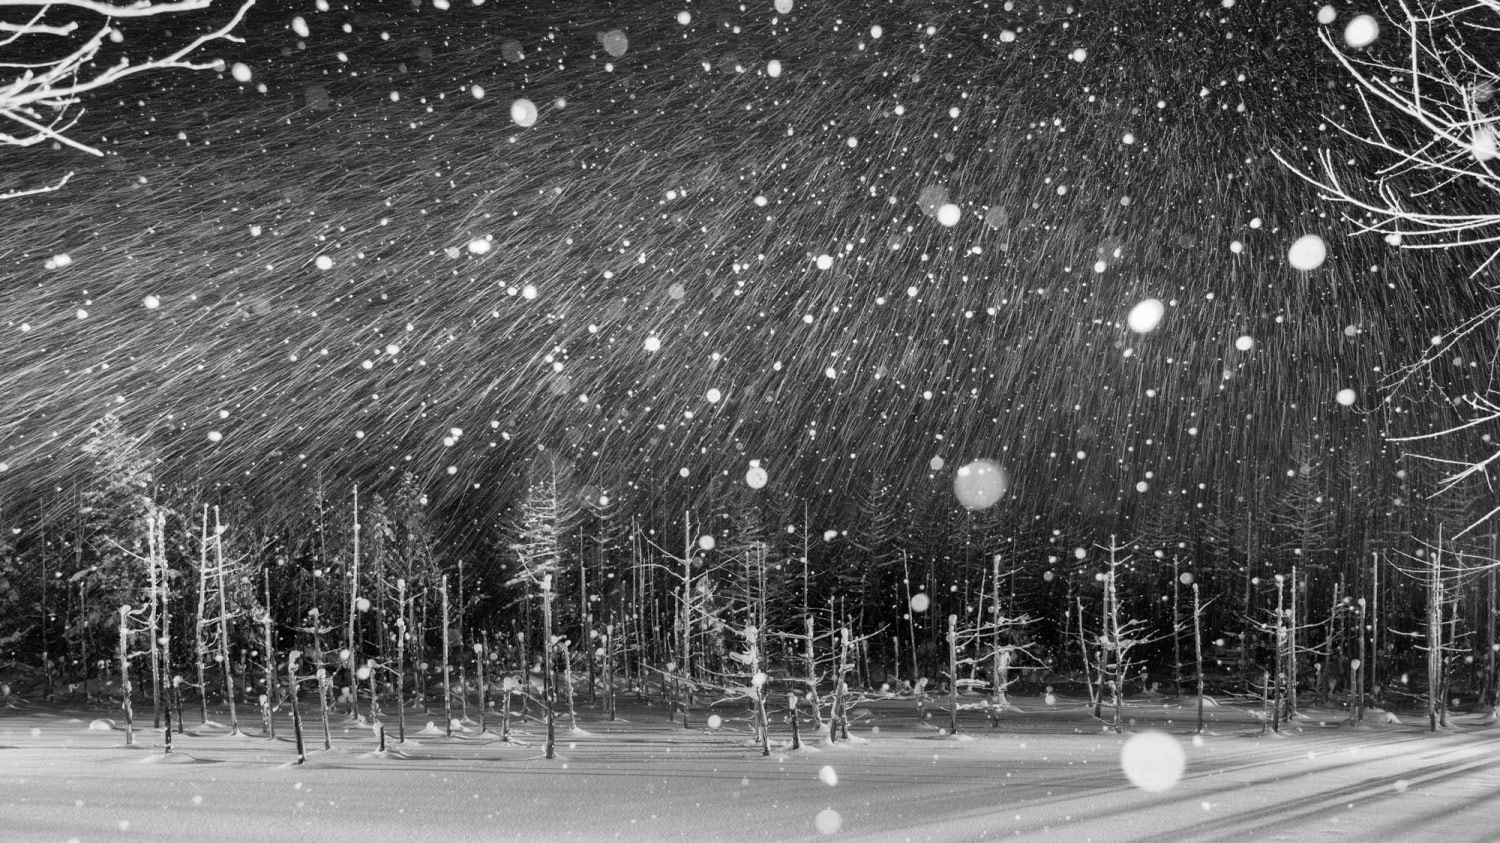 Snowy Night, © Yoshihiro ABIKO, Grand Winner, Professional, Zebra Awards - TZIPAC Black and White Photographer of the Year